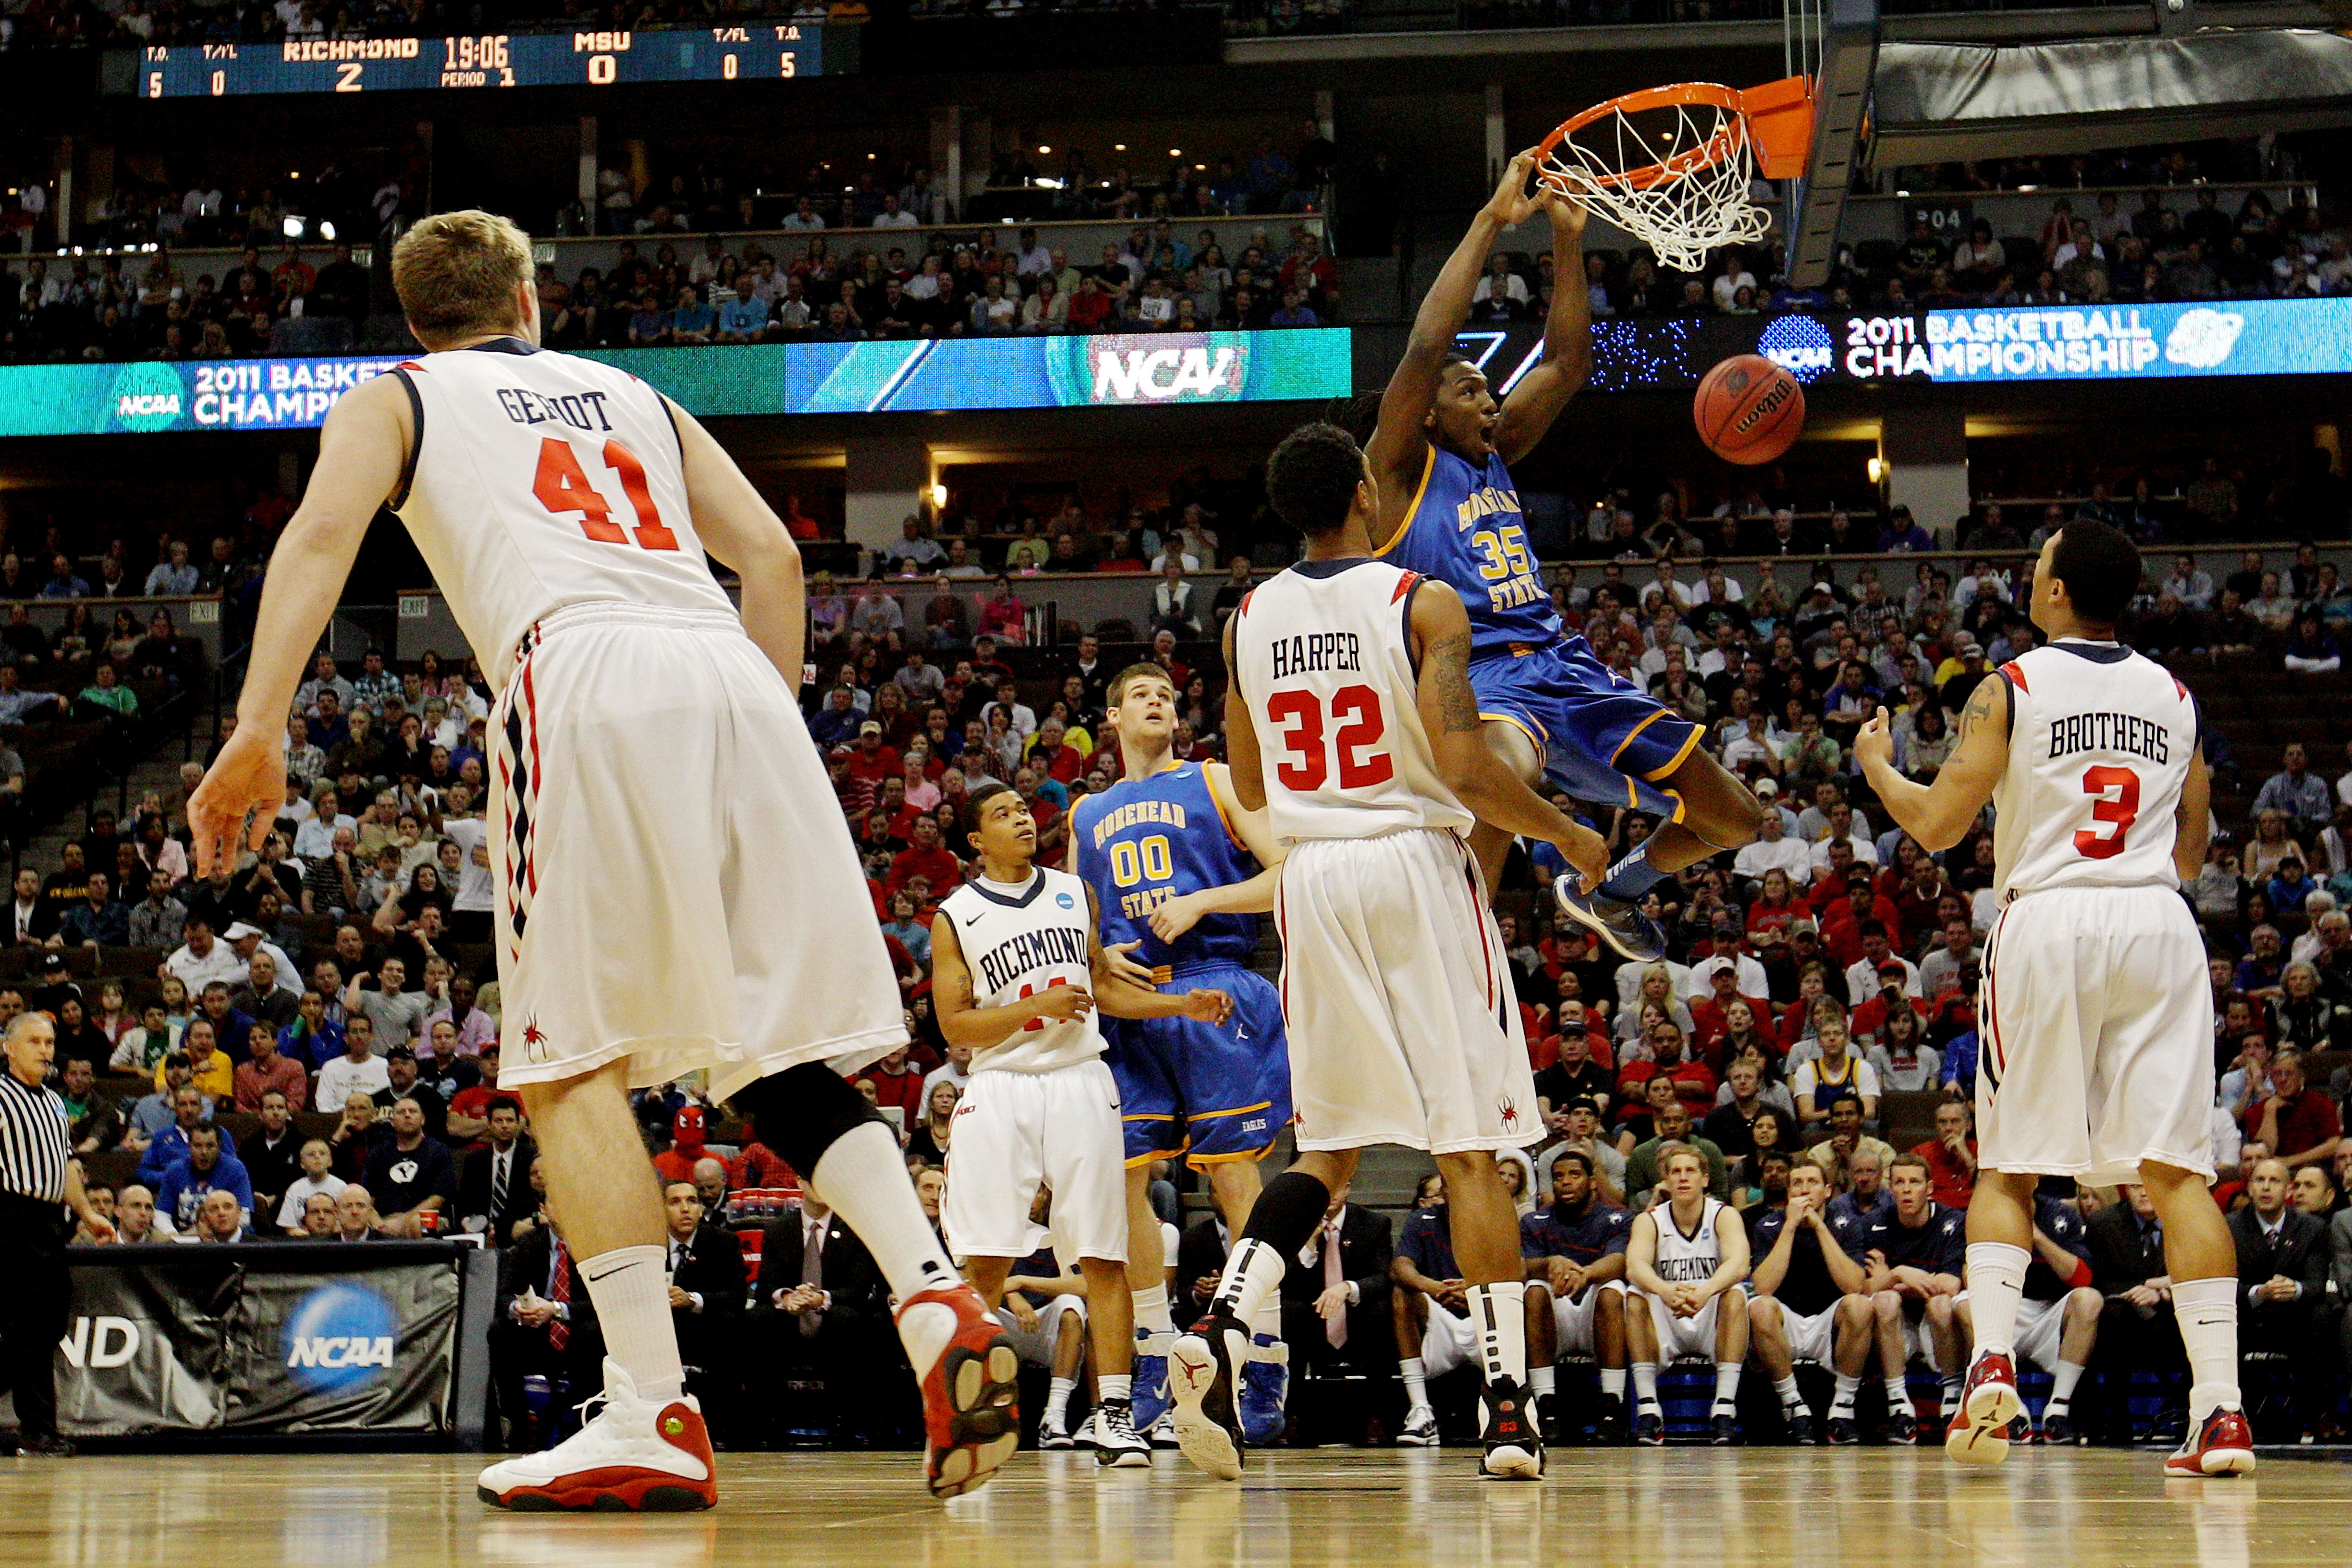 DENVER, CO - MARCH 19:  Kenneth Faried #35 of the Morehead State Eagles dunks the ball against Justin Harper #32 and Darien Brothers #3 of the Richmond Spiders during the third round of the 2011 NCAA men's basketball tournament at Pepsi Center on March 19